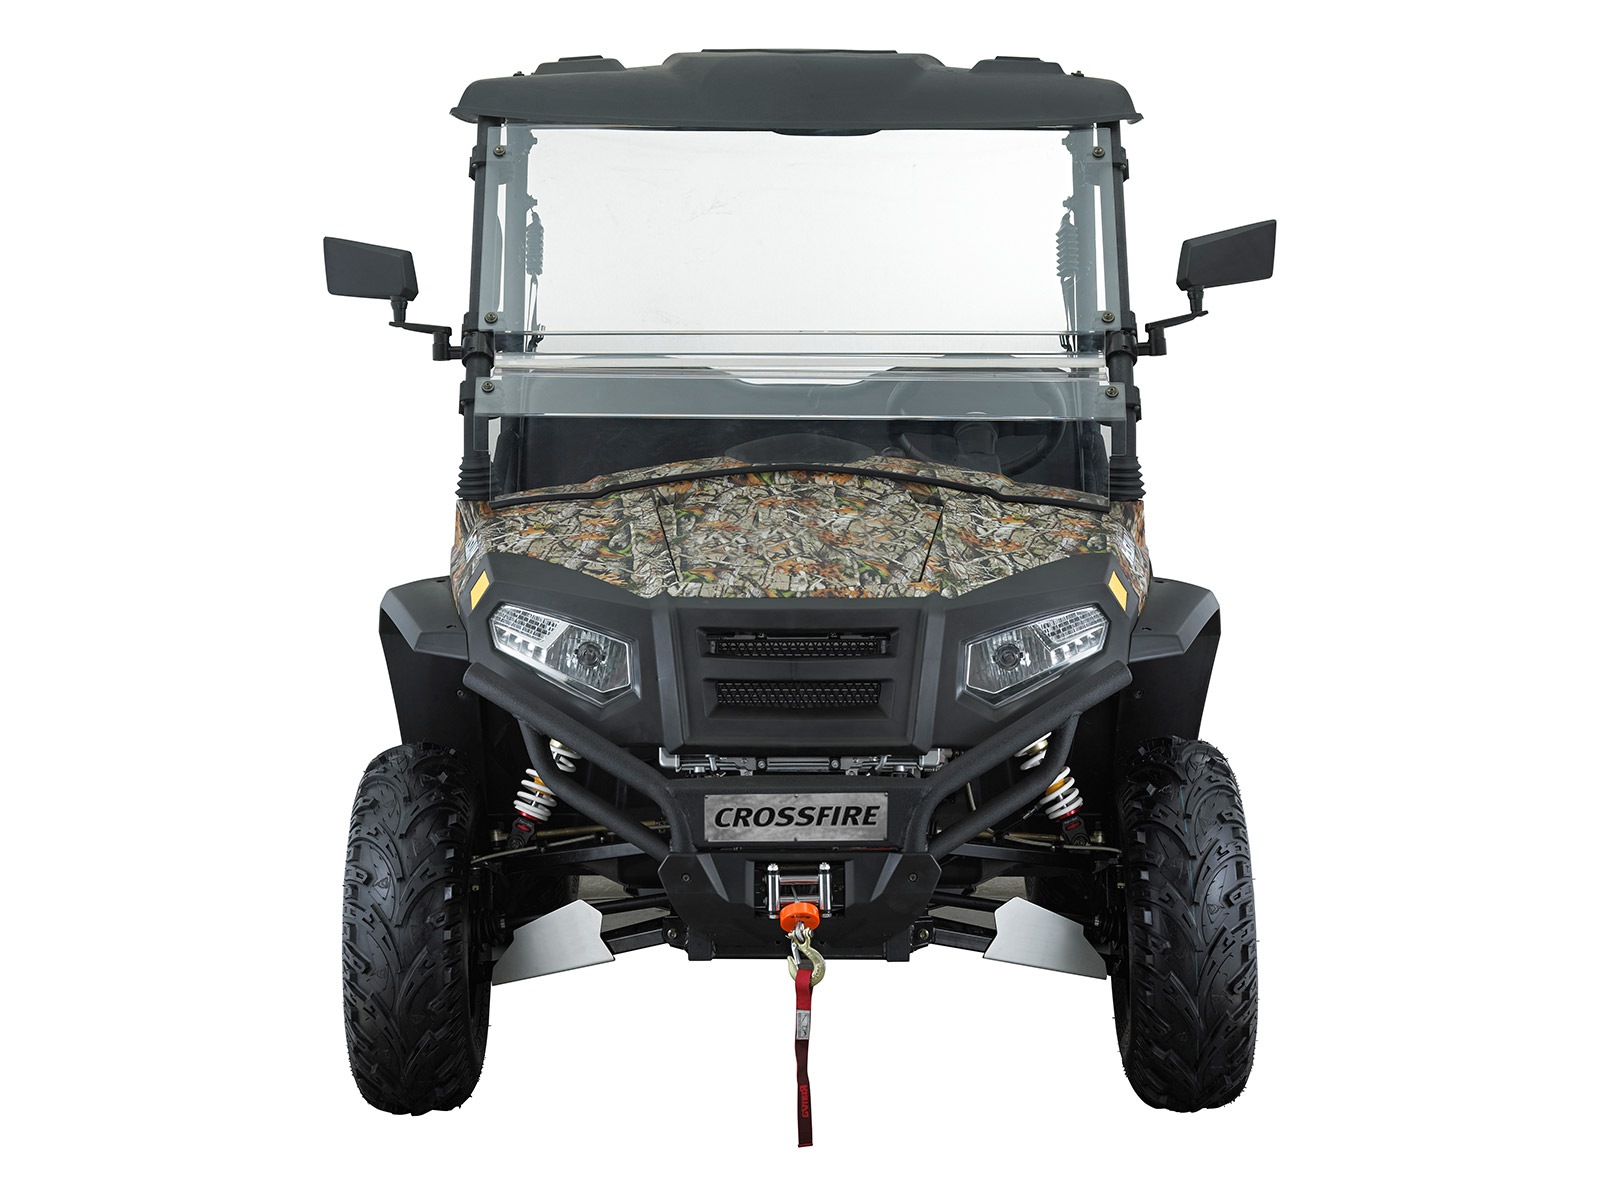 day illustrated mightylite test deep vendor great lite rear mighty content product atv rack racks on